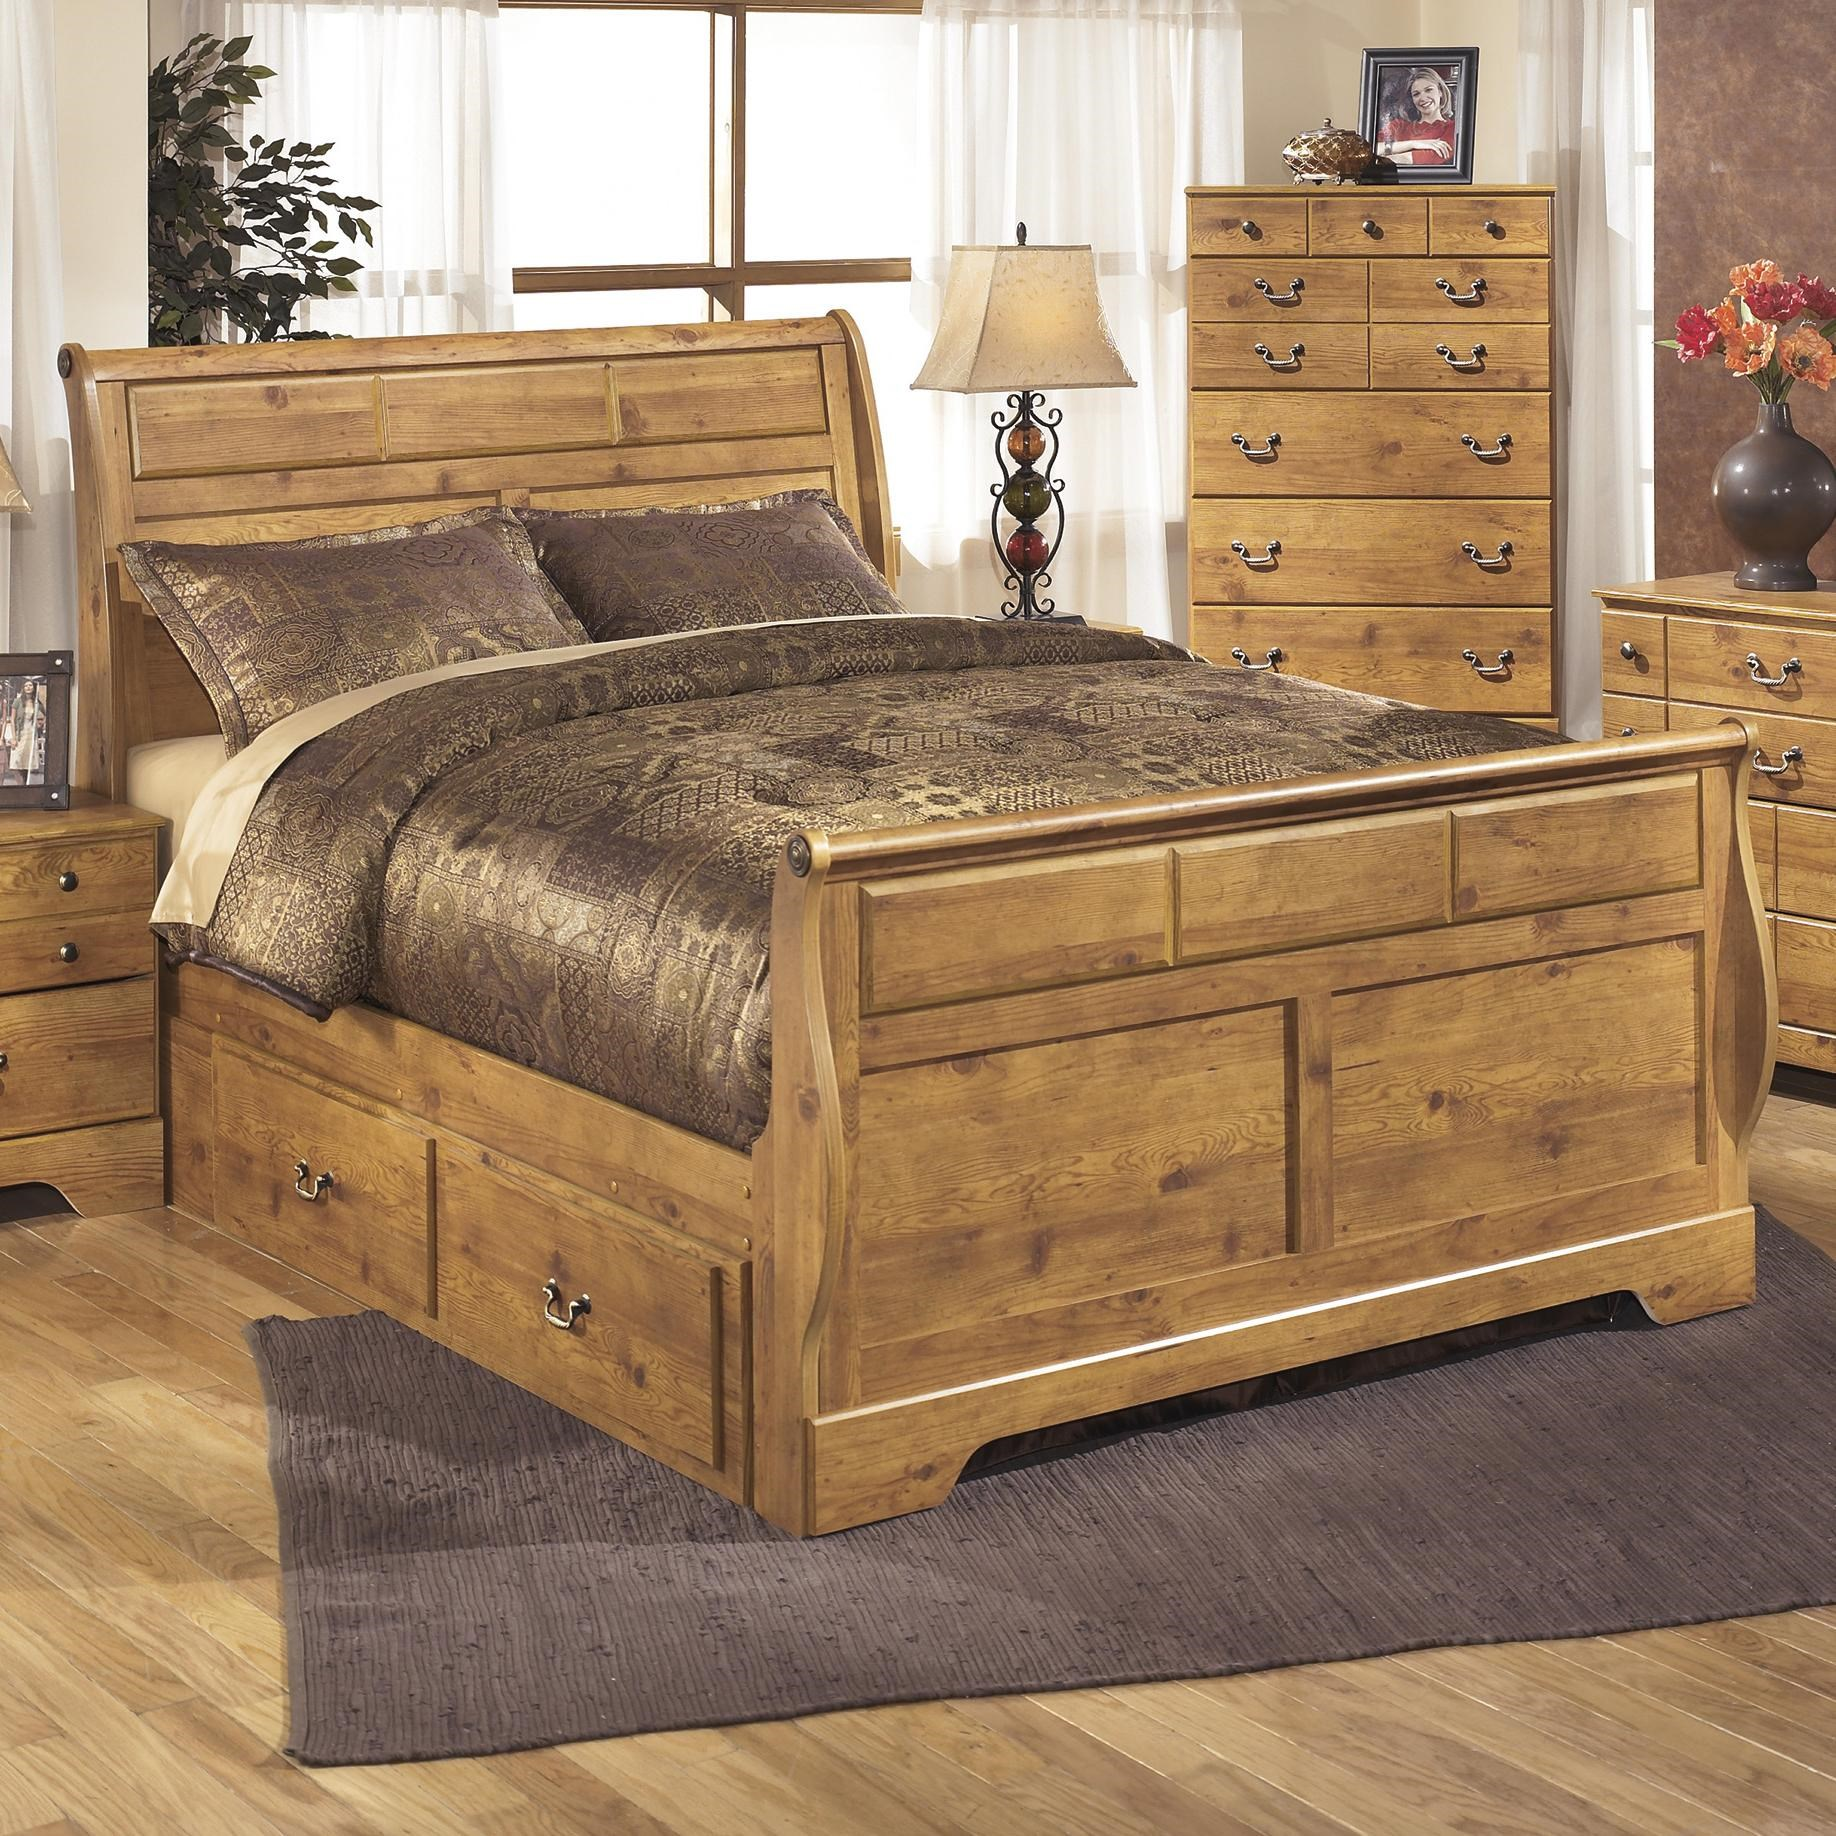 Signature Design by Ashley Bittersweet Queen Sleigh Bed with Under Bed Storage & Signature Design by Ashley Bittersweet Queen Sleigh Bed with Under ...